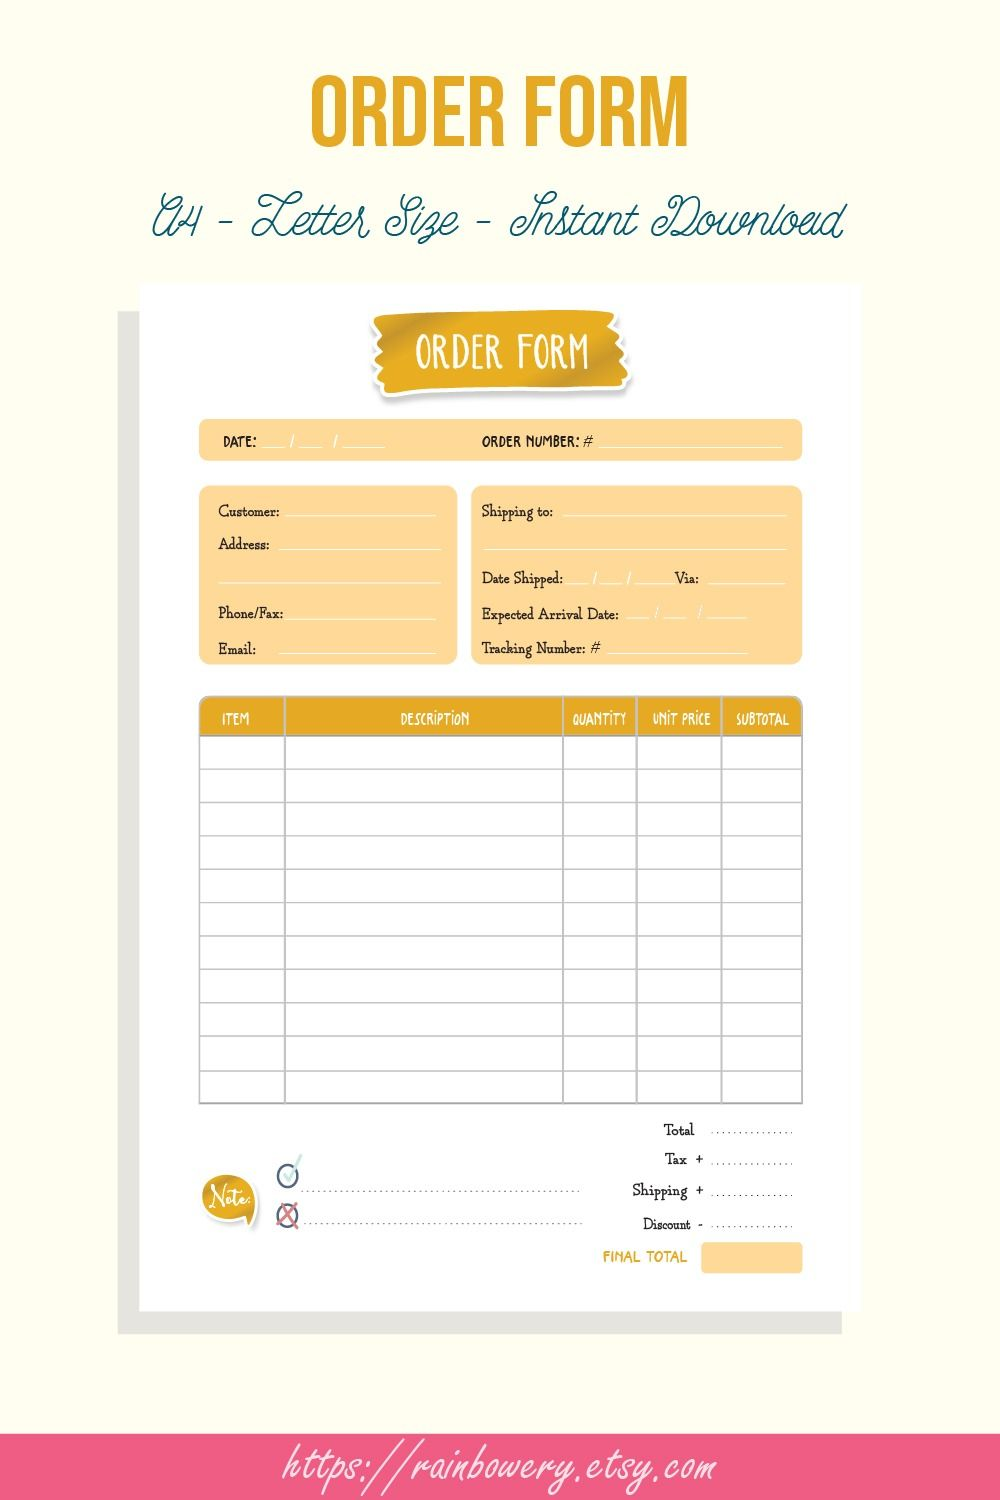 Order Form Template Printable Small Business Order Form Invoice